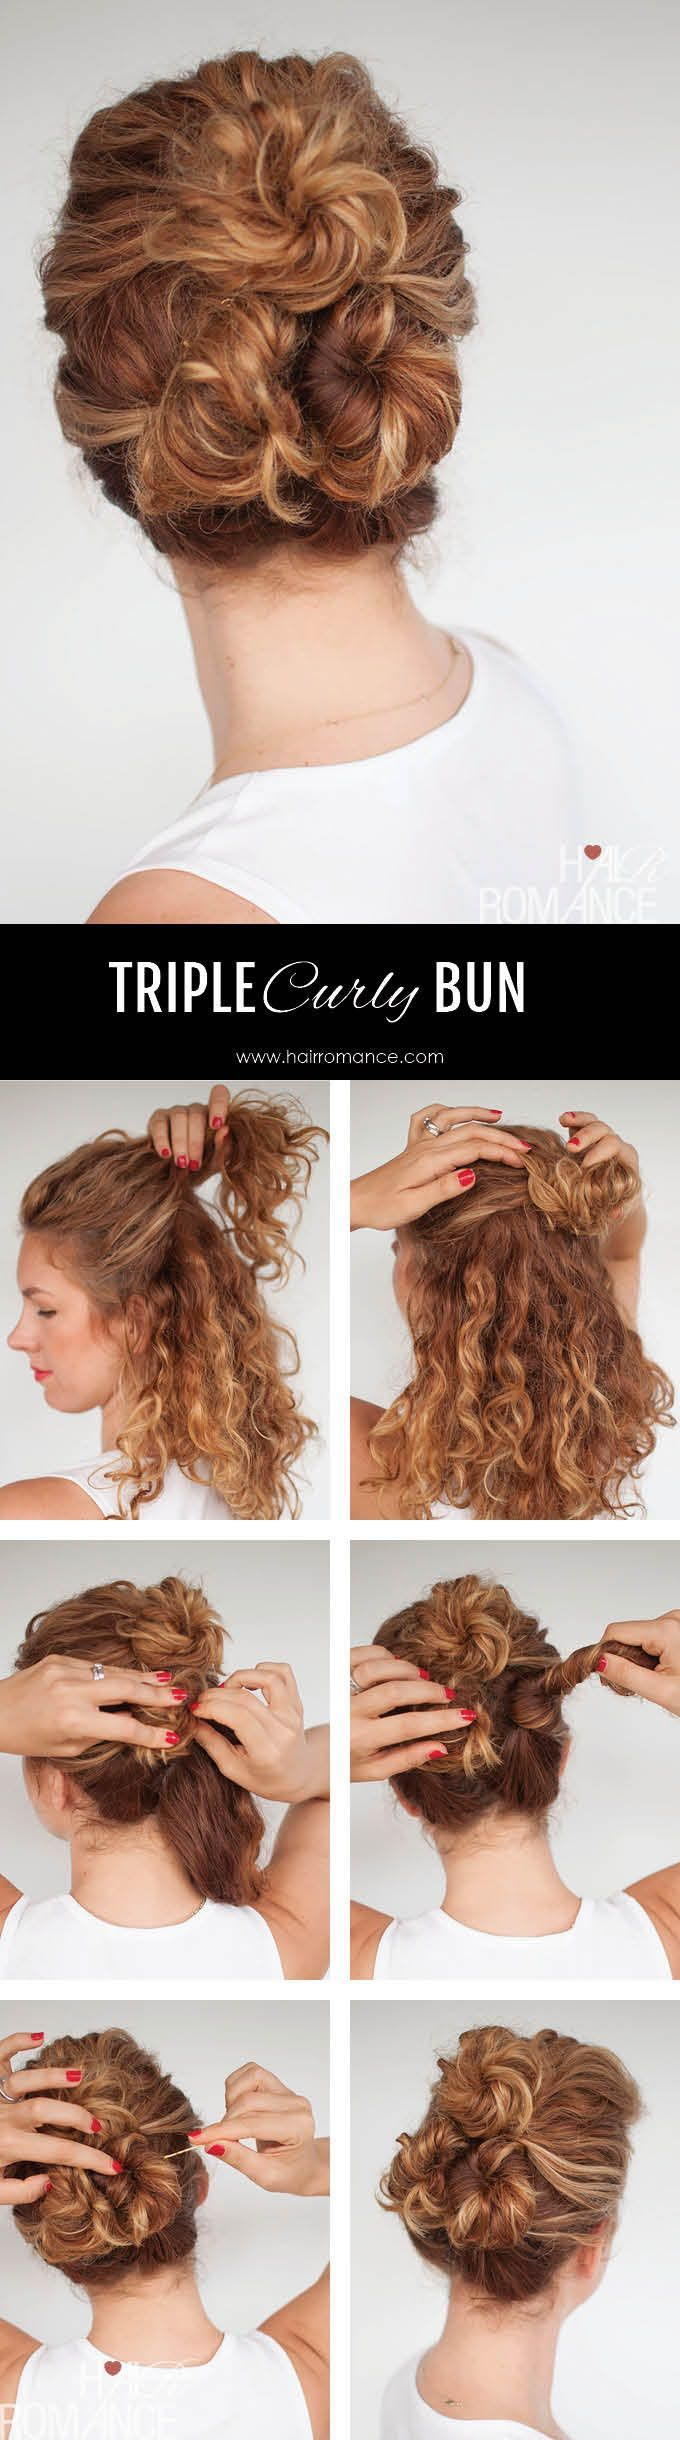 Easy everyday curly hairstyle tutorials u the curly triple bun